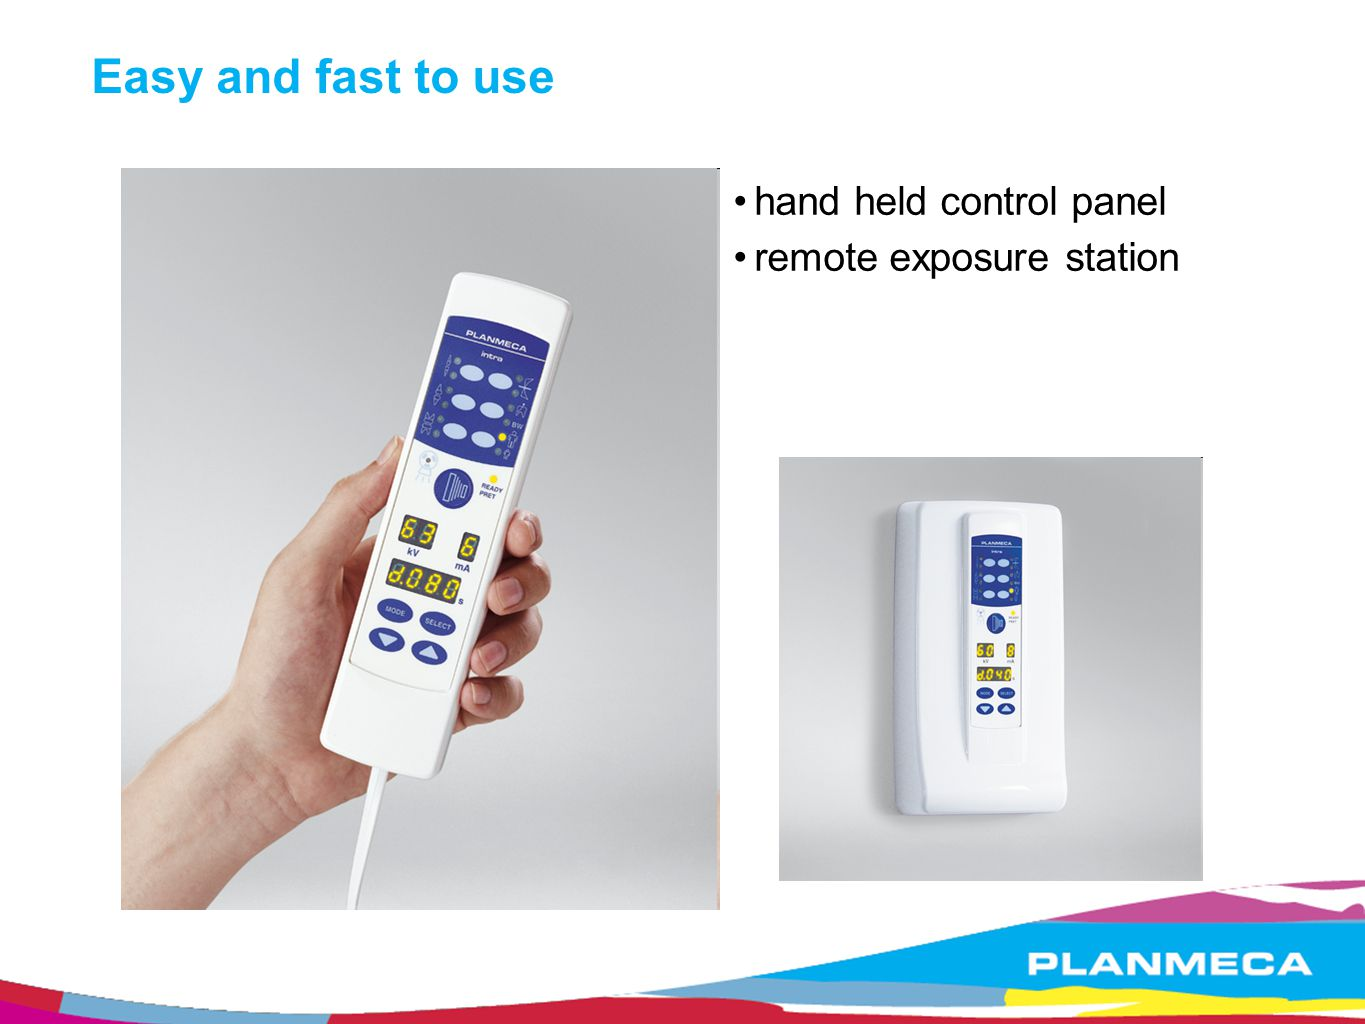 Easy and fast to use hand held control panel remote exposure station